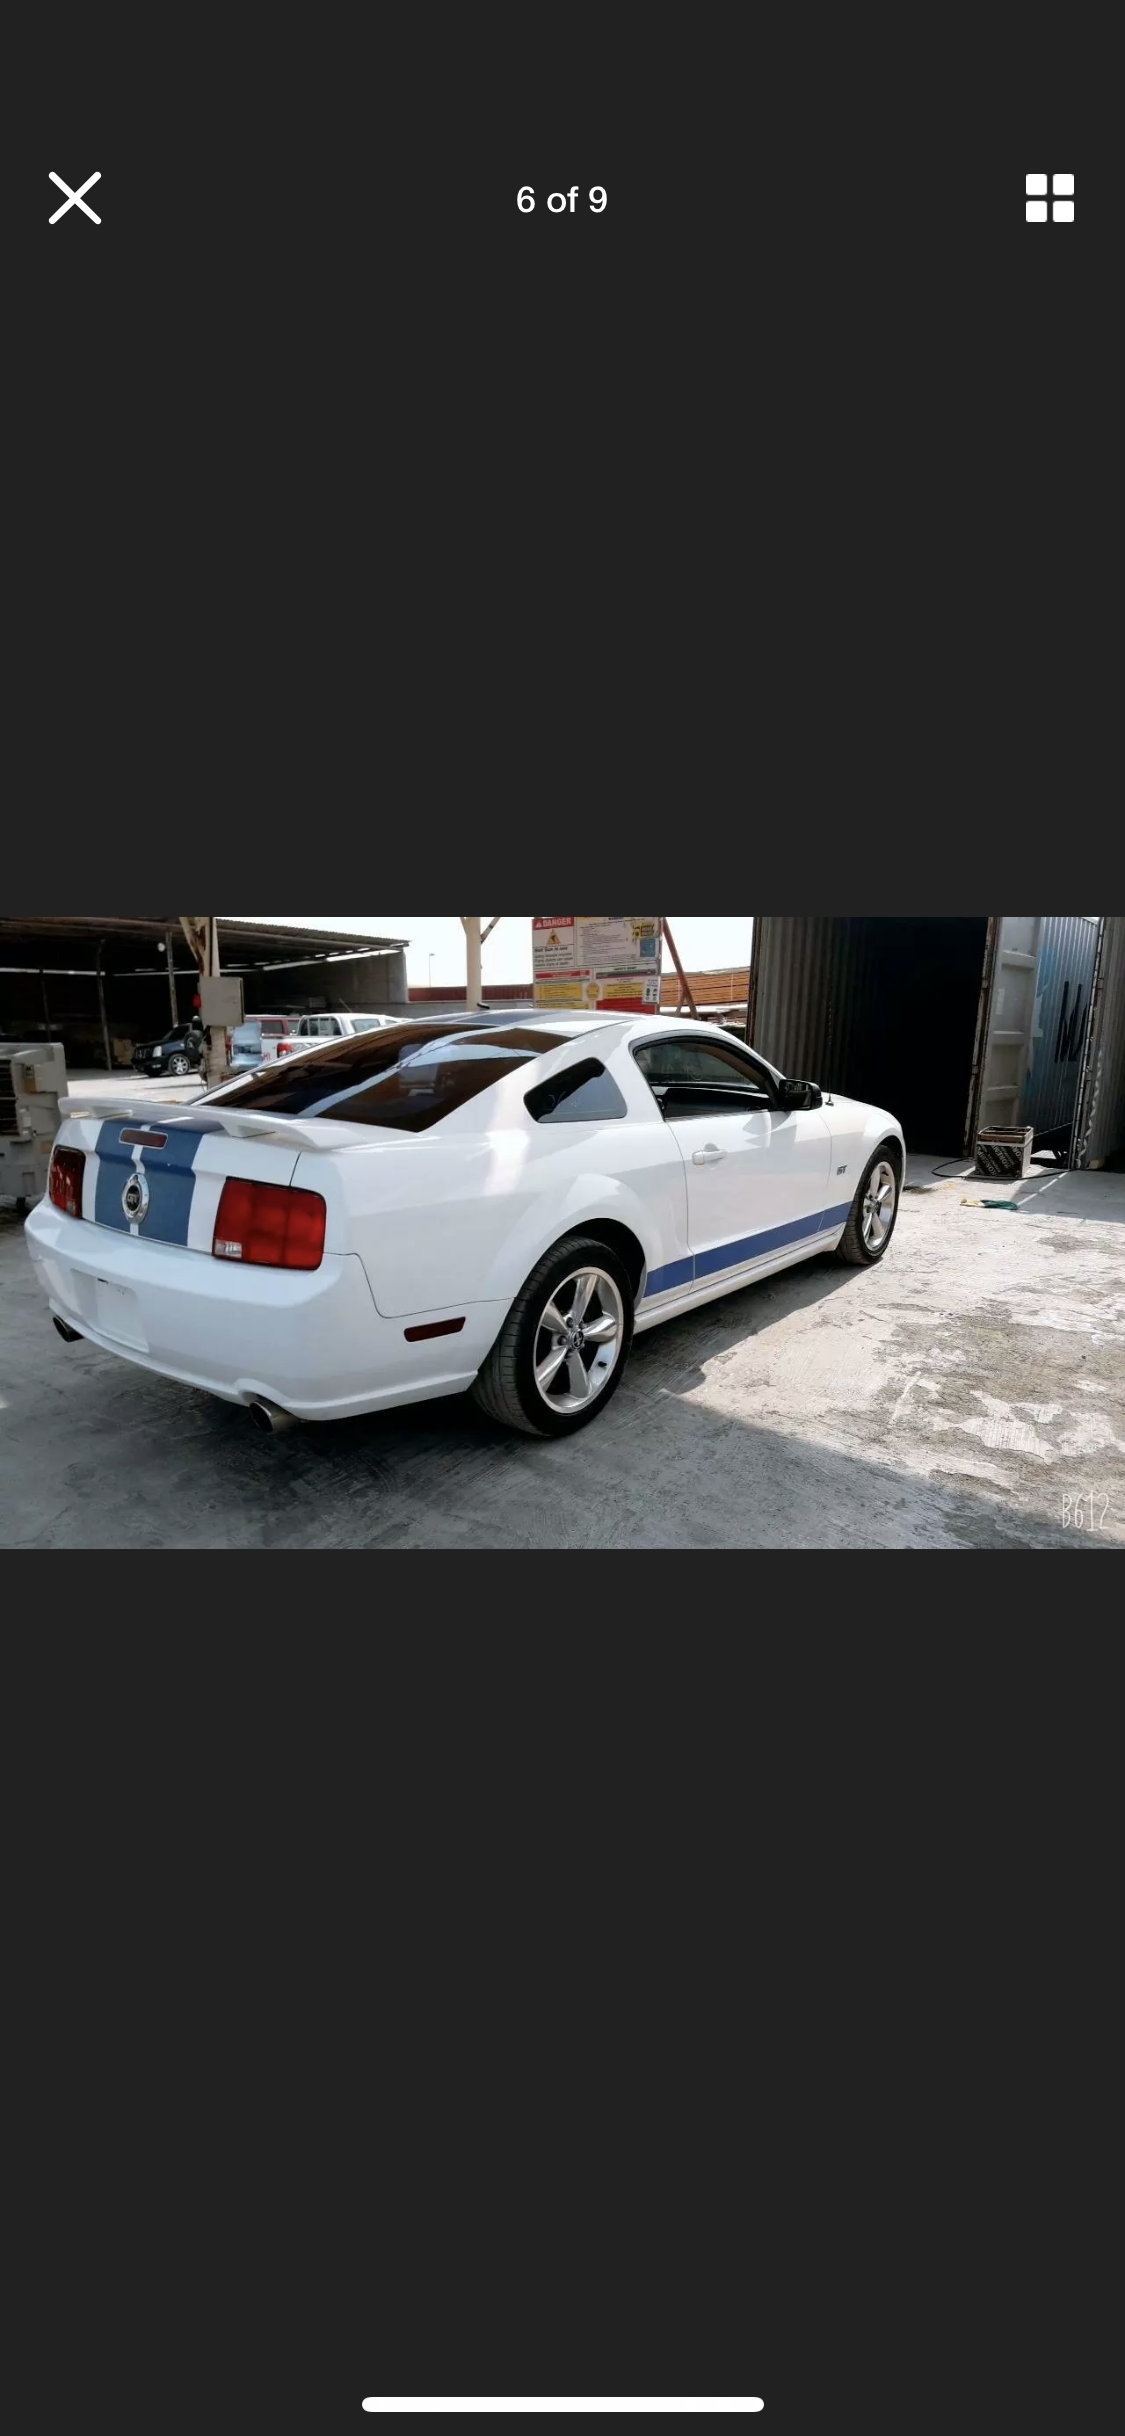 2005 FORD MUSTANG 4.6 V8 GT WHITE LHD FRESH IMPORT For Sale (picture 6 of 6)